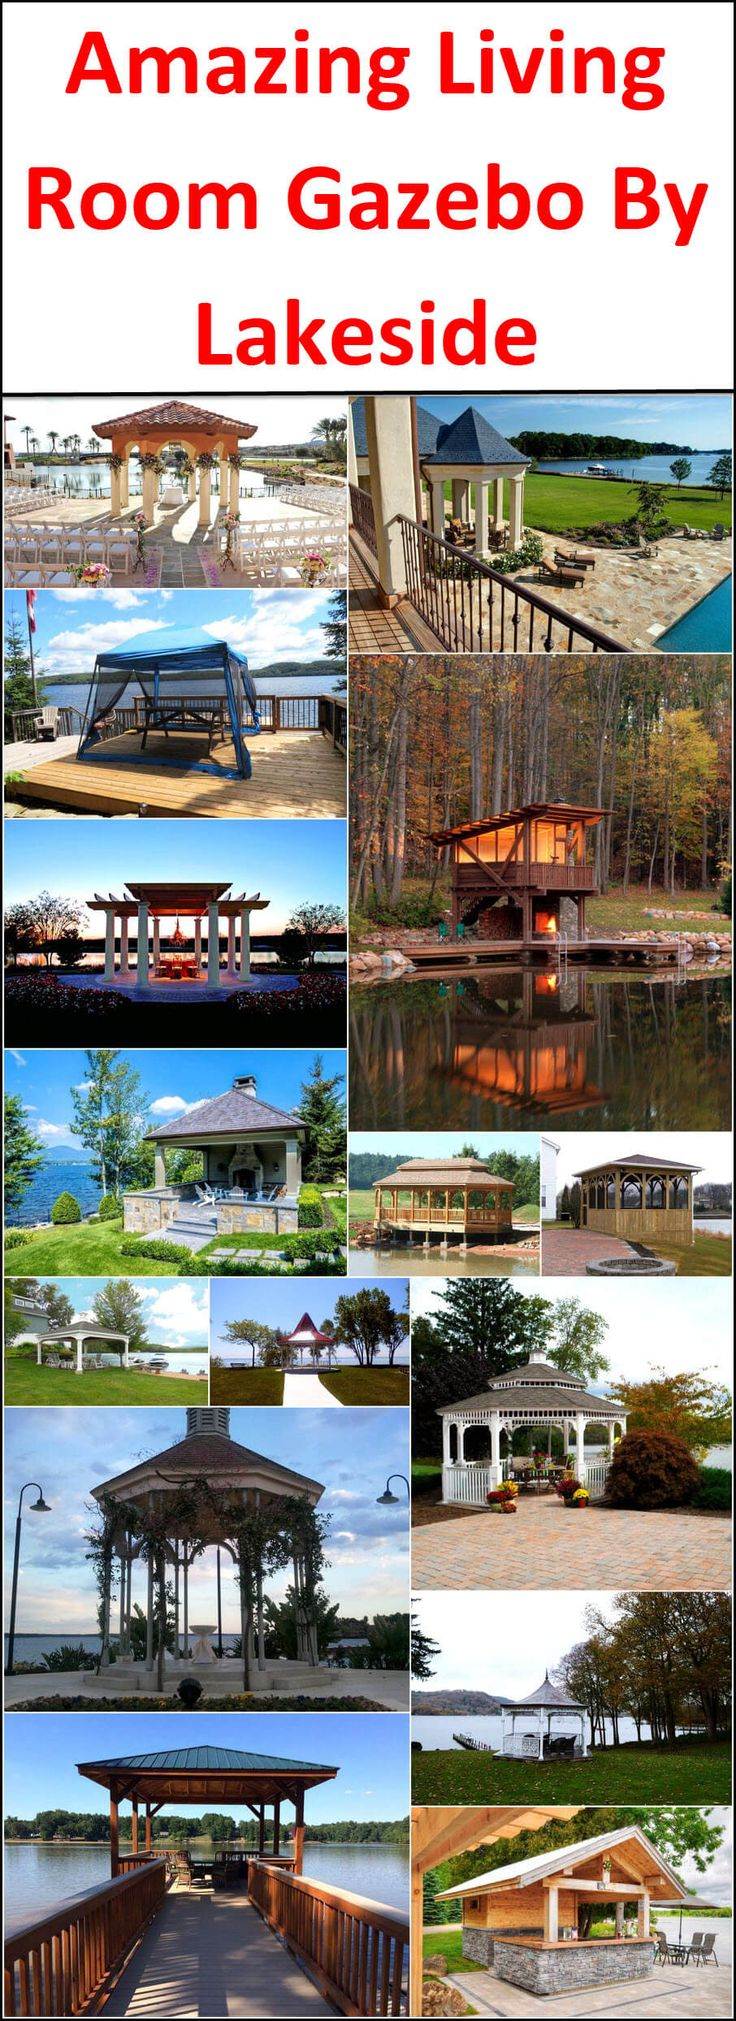 People Having Houses Along The Lakesides Or Riversides Enjoy Beautiful Sunsets And Sunrises Every Day